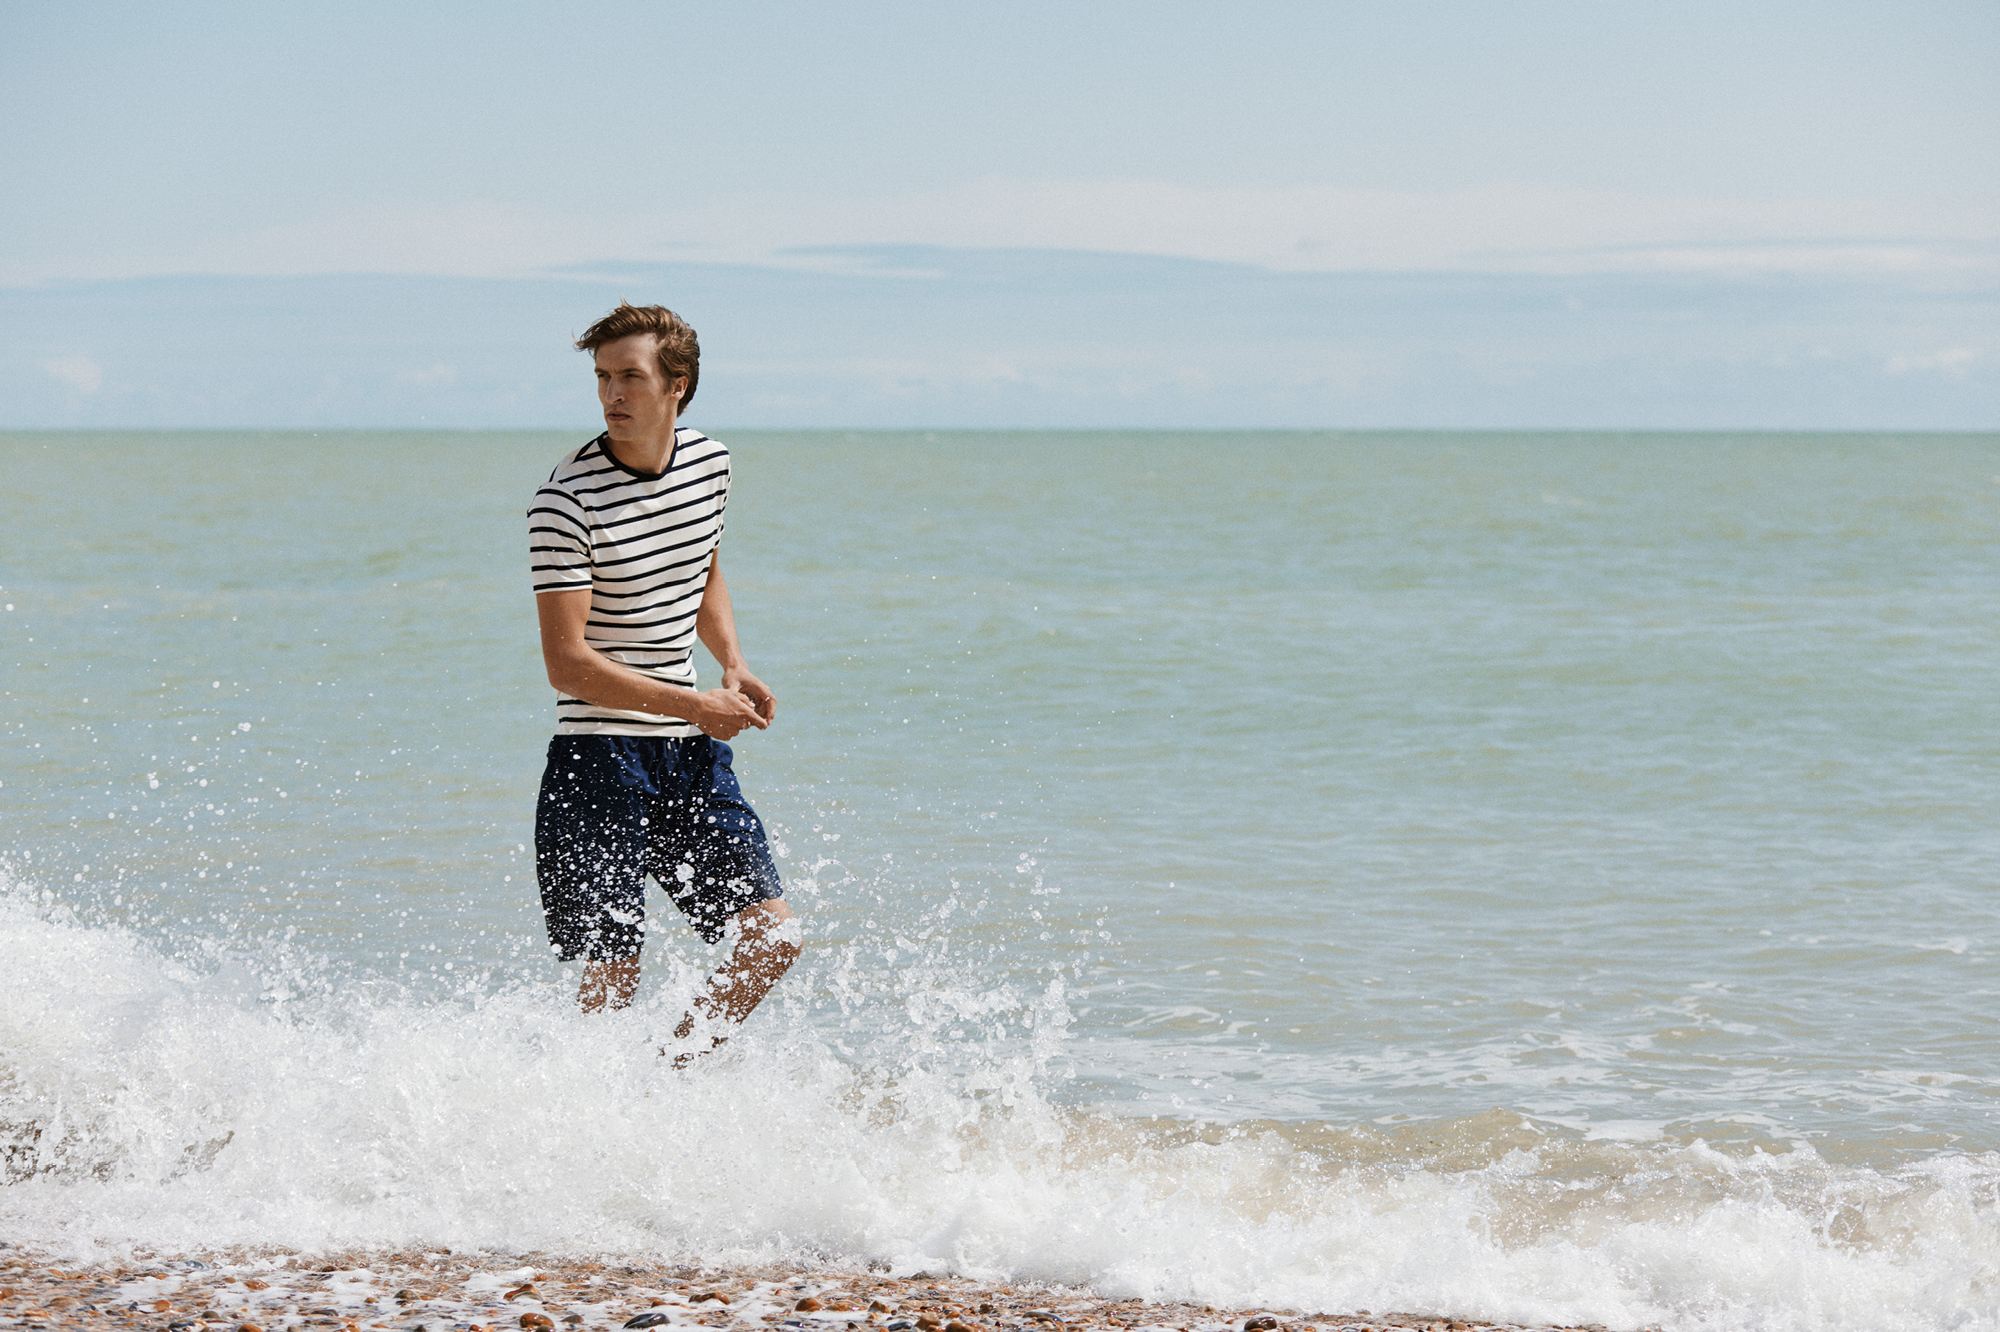 Sunspel's exquisitely made t-shirts are the perfect hot-weather staple